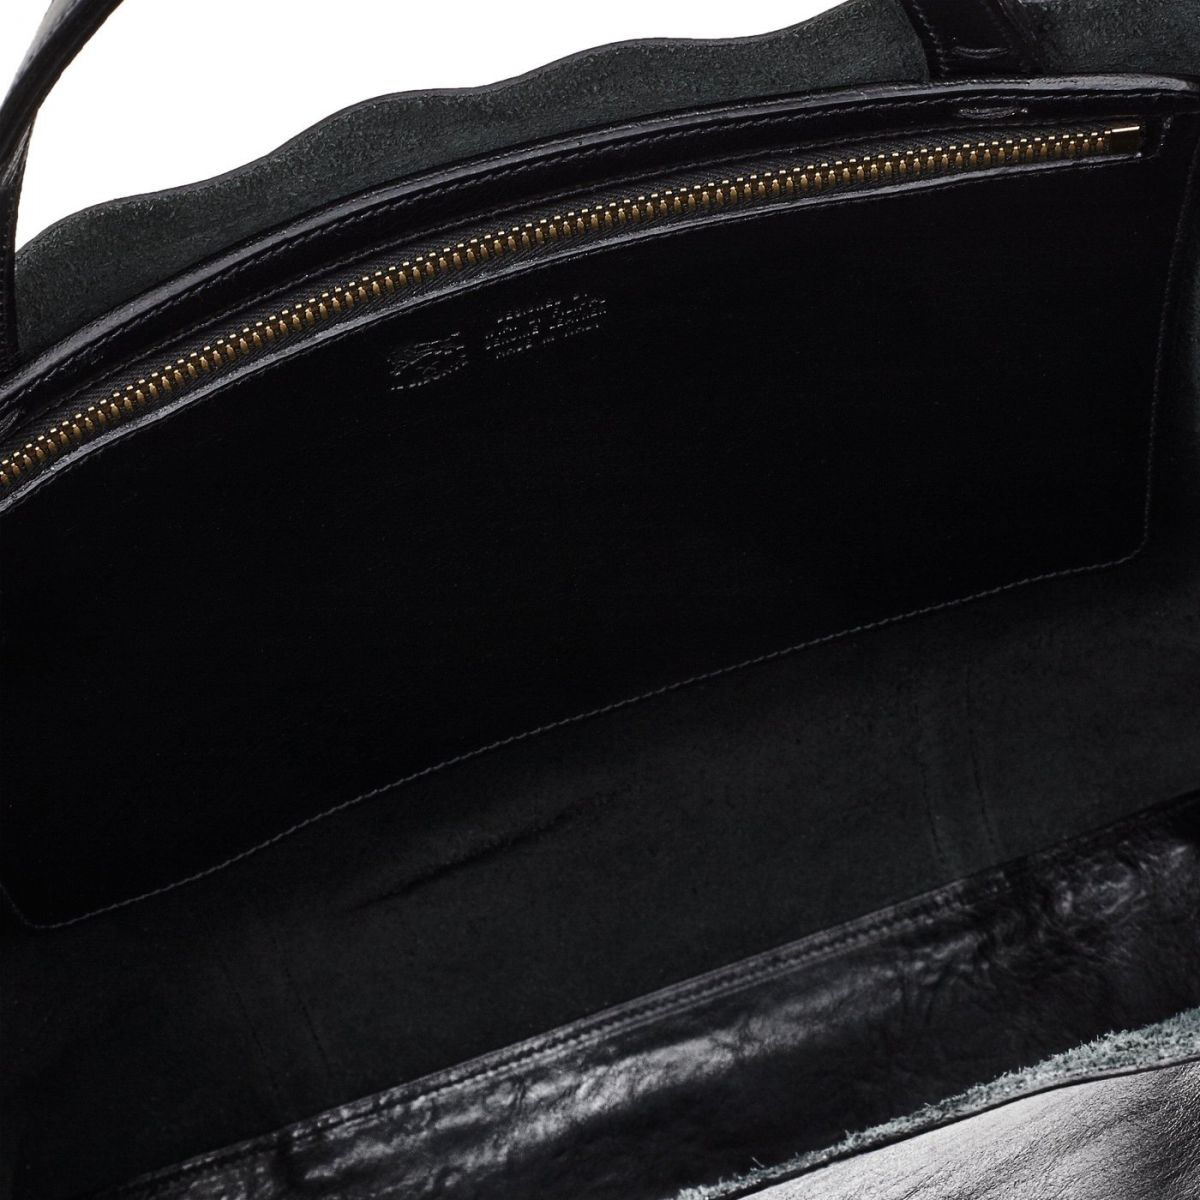 Women's Handbag in Cowhide Double Leather BTH005 color Black | Details